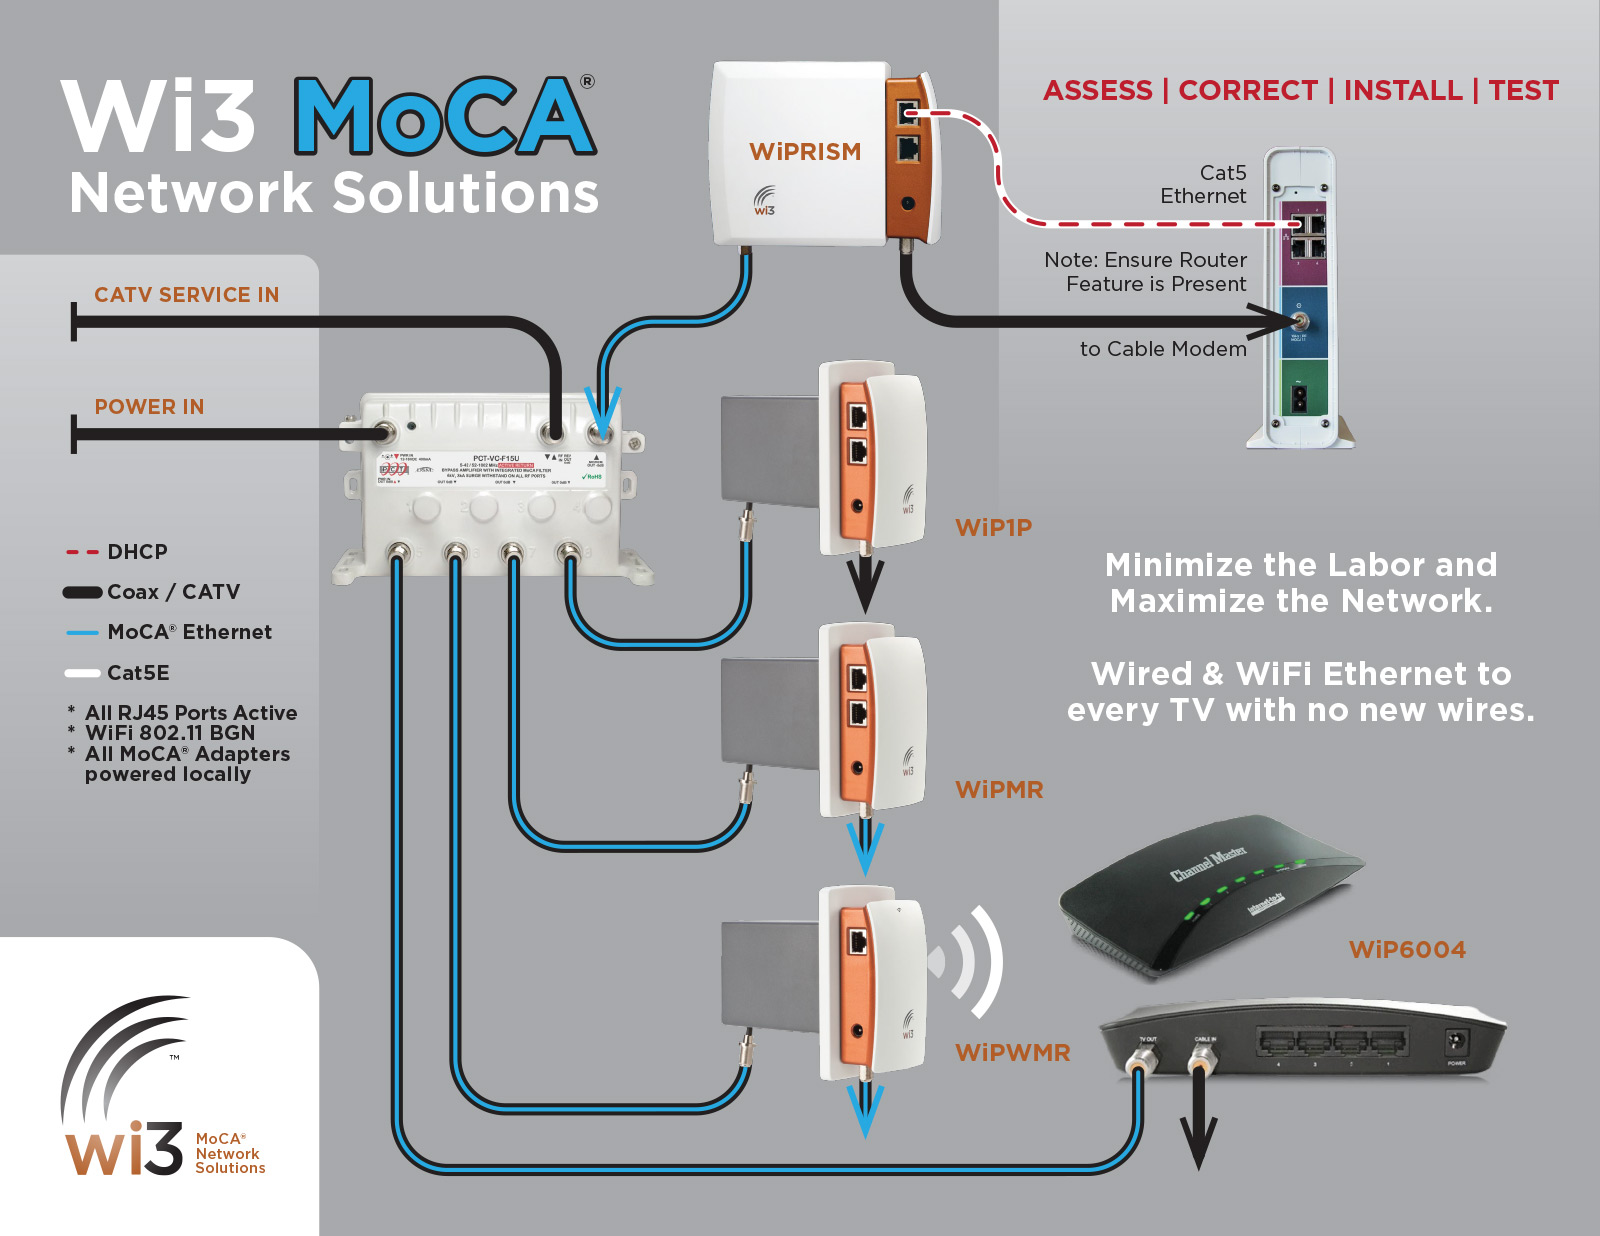 moca network wiring diagram moca image wiring diagram wi3 moca network solutions joins home technology specialists of on moca network wiring diagram